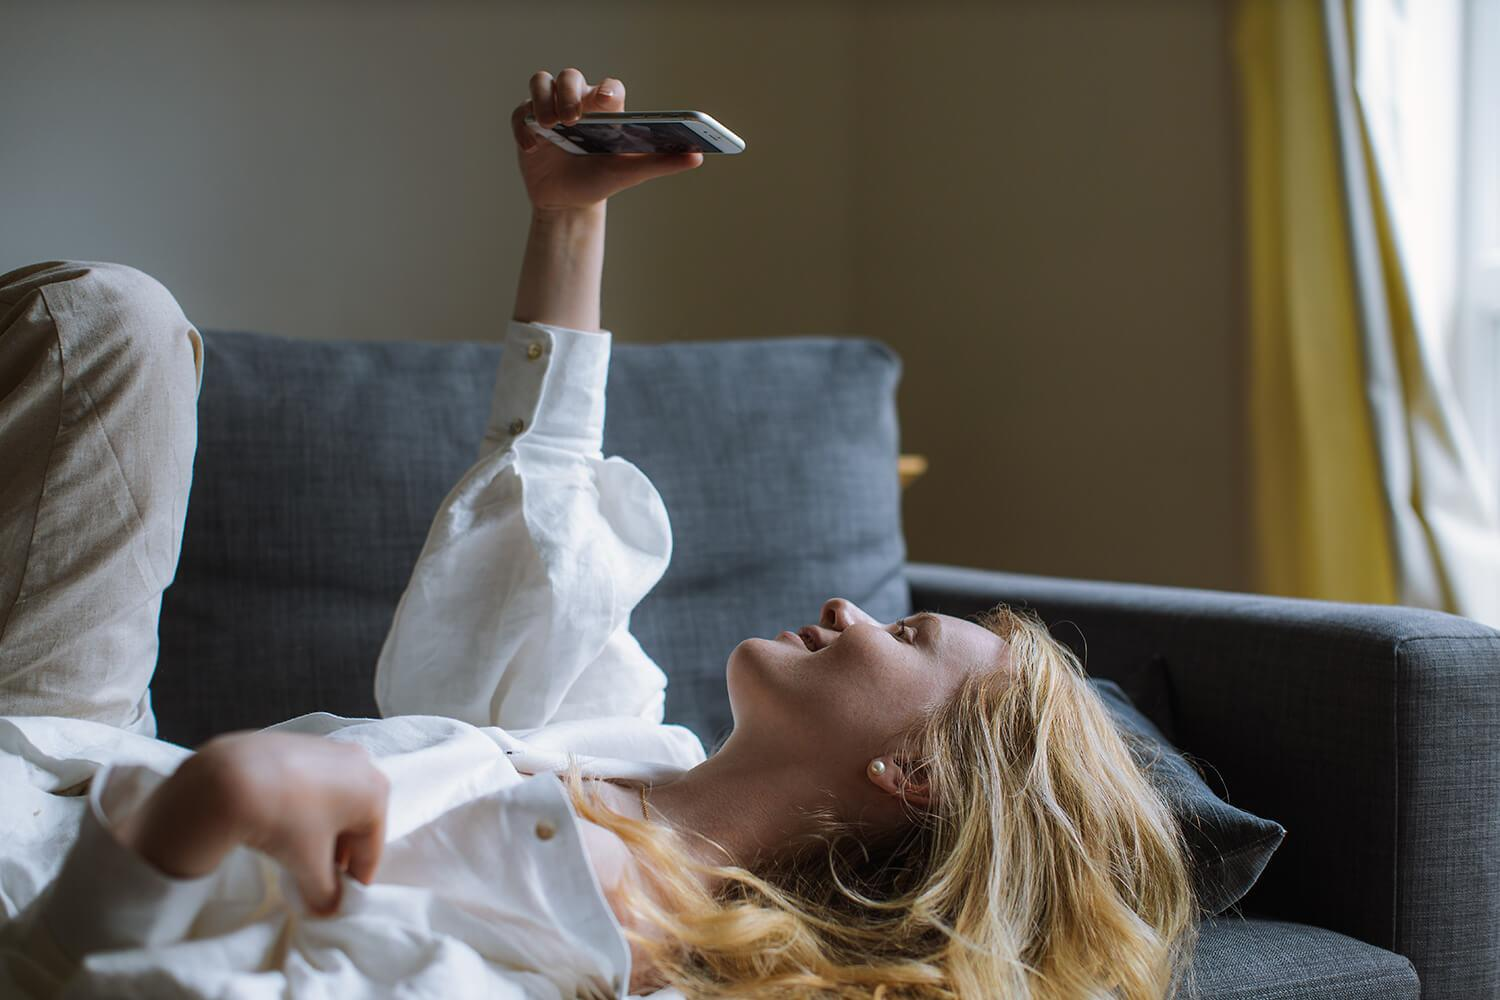 woman in white dress shirt holding a smartphone